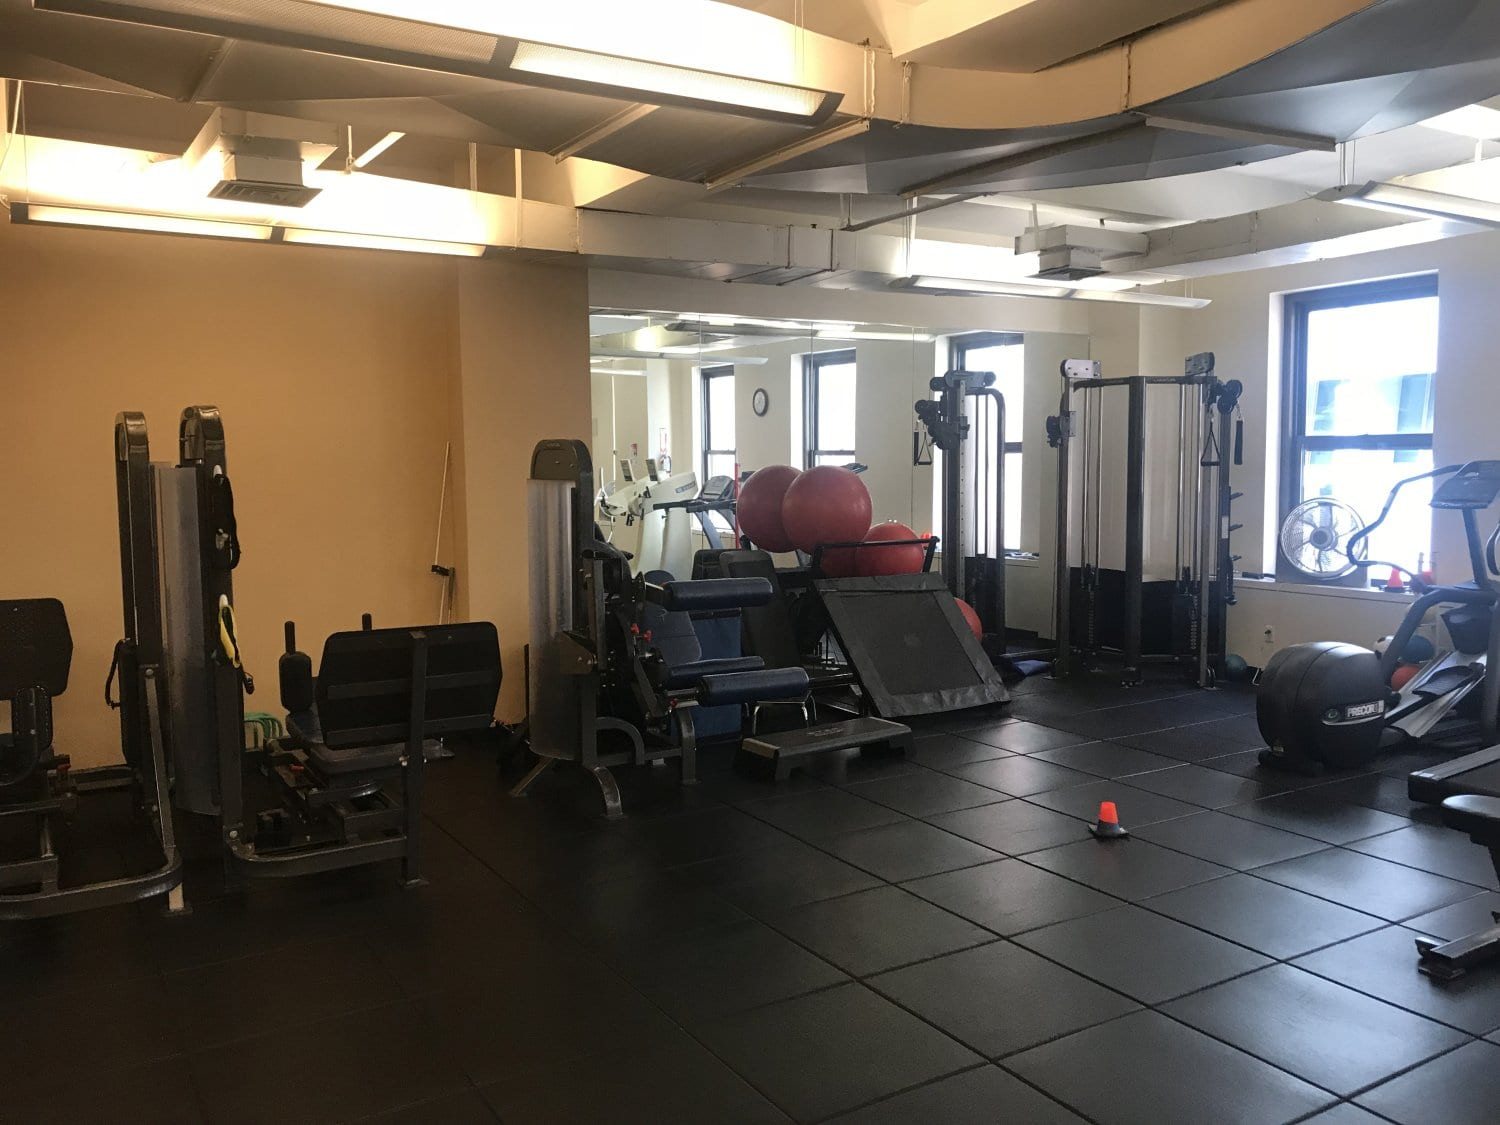 At image of the various exercise equipment at our physical therapy clinic in Manhattan, New York City, Midtown East.